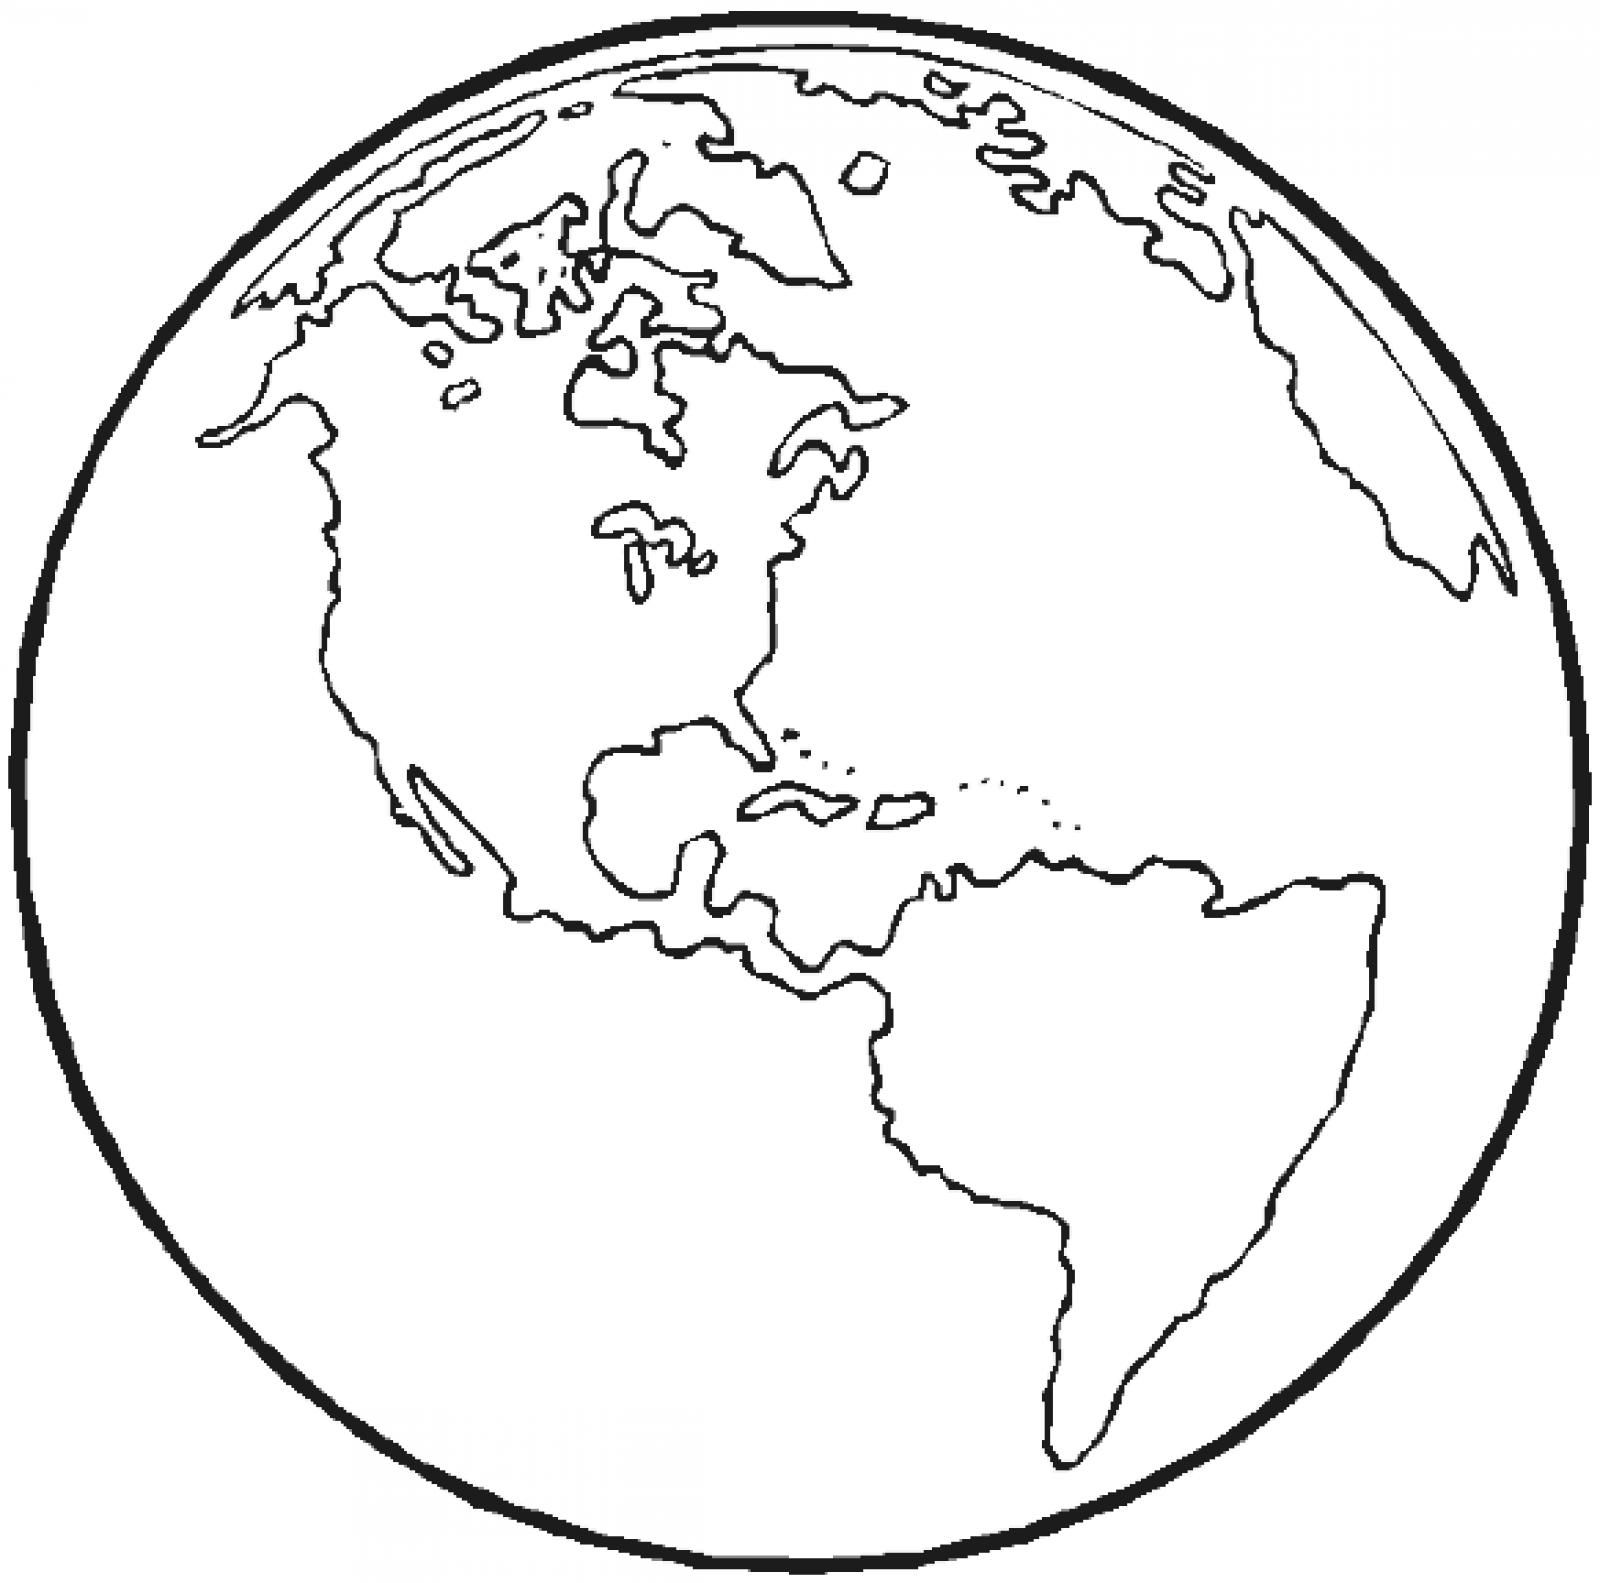 The Earth Coloring Page  Earth coloring pages, Planet coloring